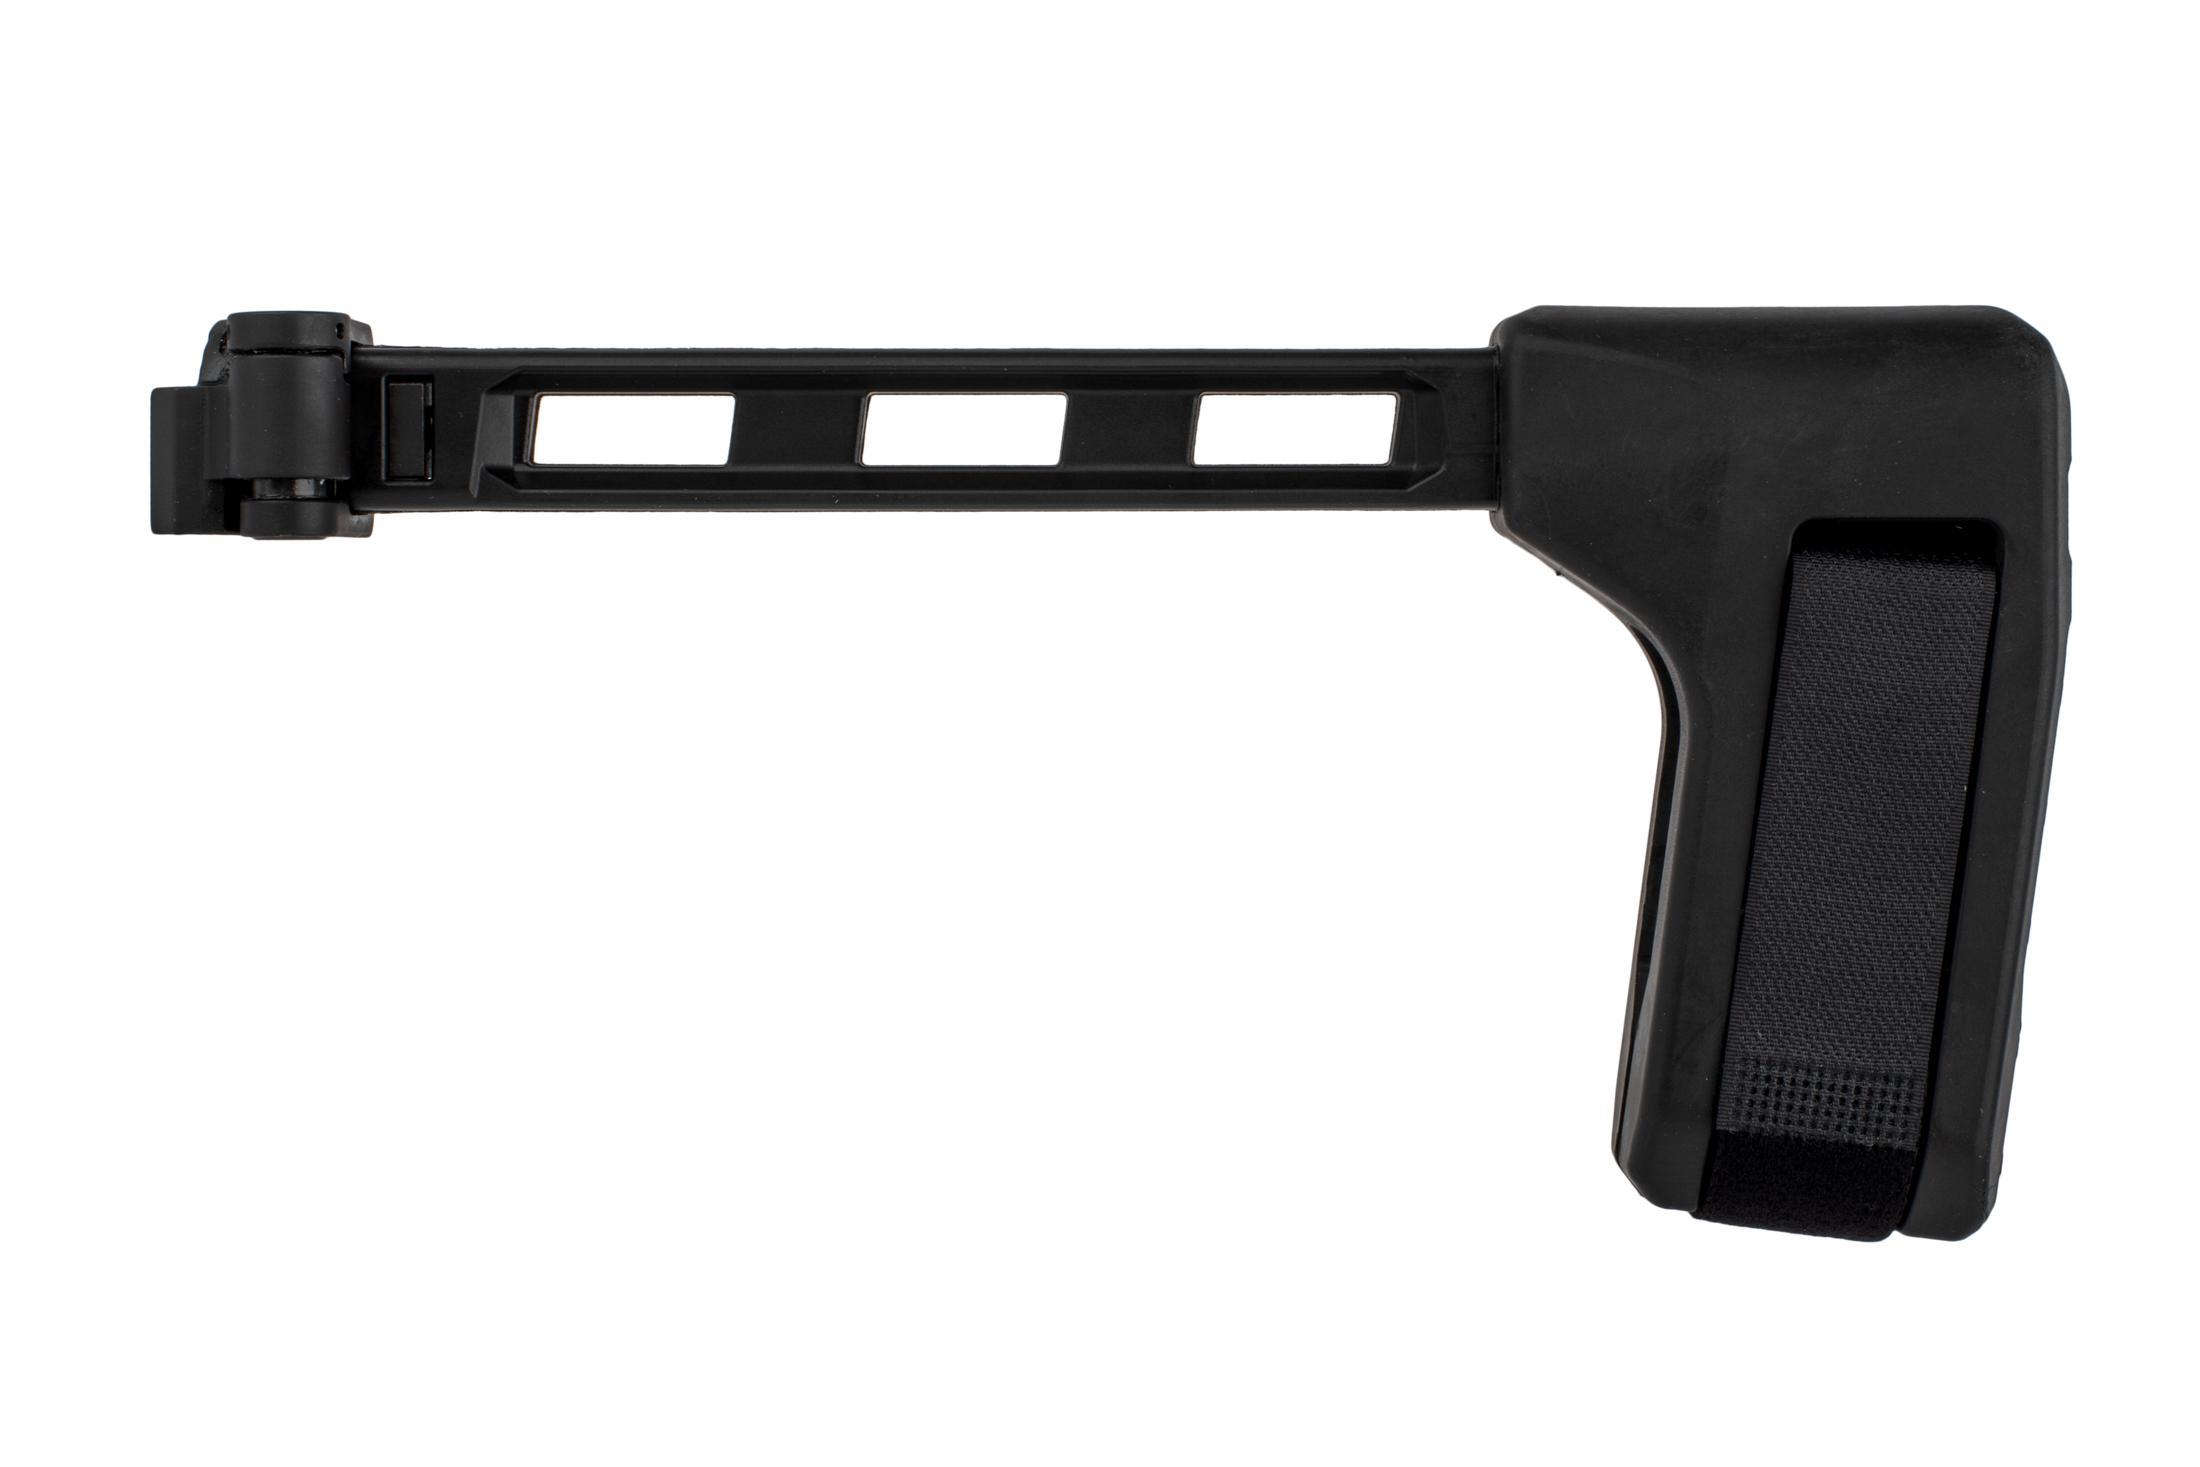 The SB Tactical pistol arm brace FS1913 is fully ATF compliant and made in the USA